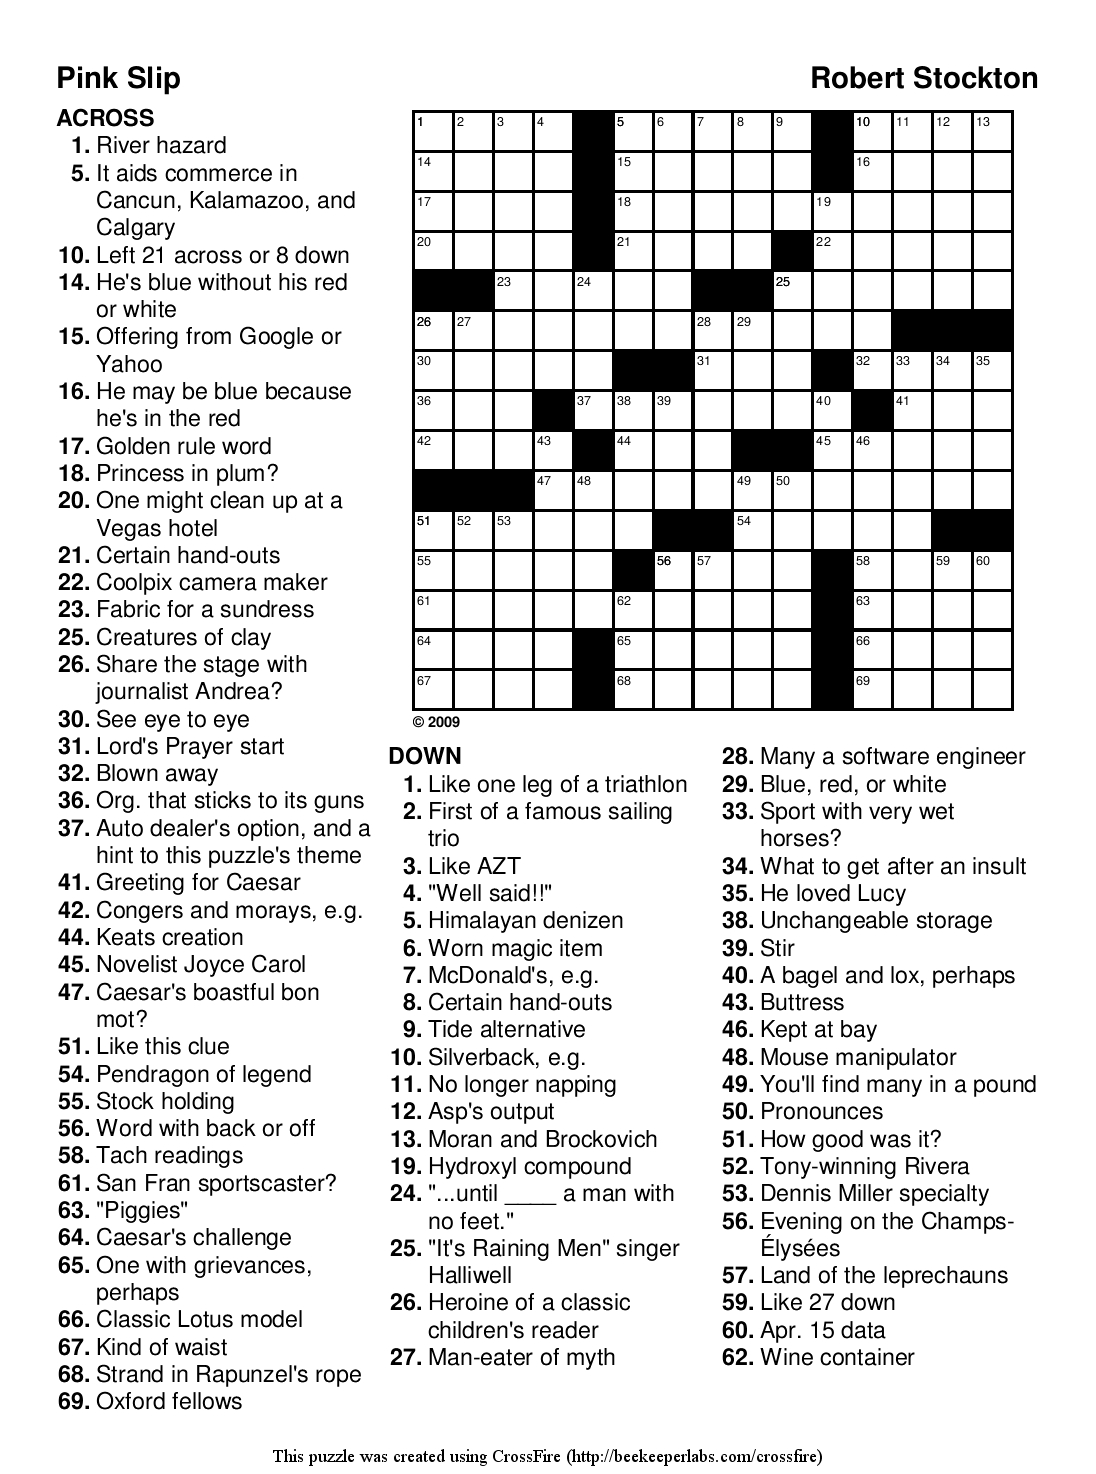 Printable Puzzles For Adults | Easy Word Puzzles Printable Festivals - Free Printable Crossword Puzzles Medium Difficulty With Answers